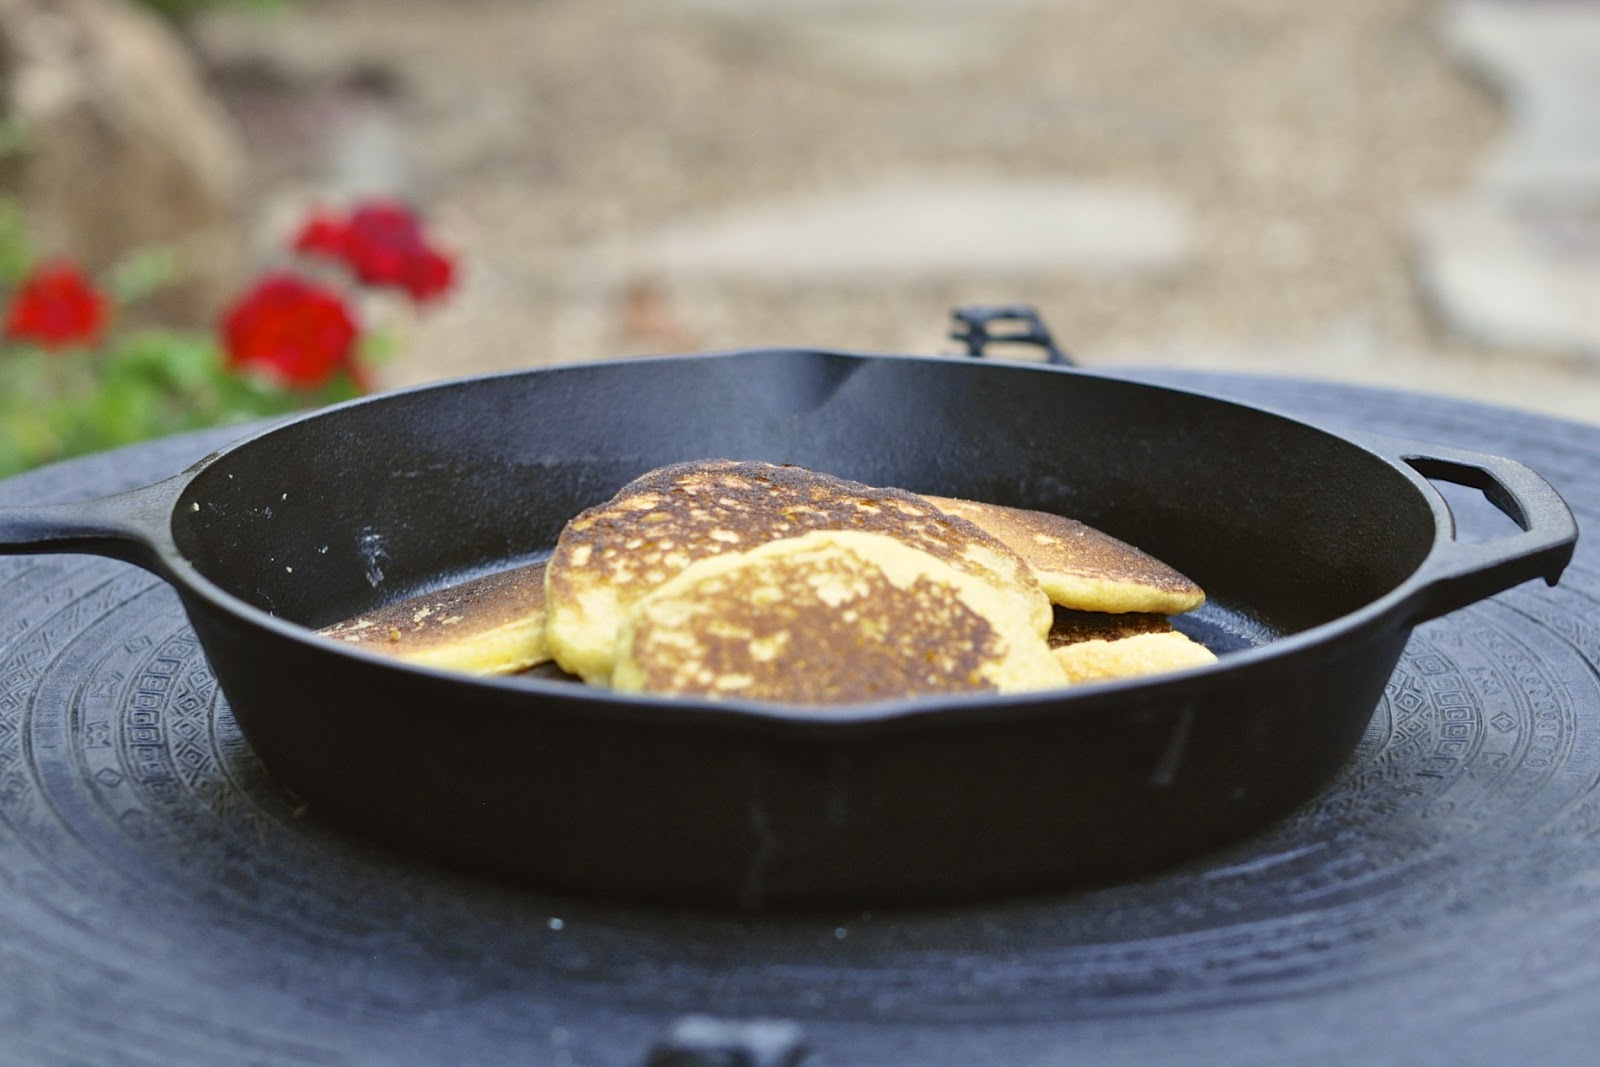 My Own Sweet Thyme: Cornbread Griddle Cakes